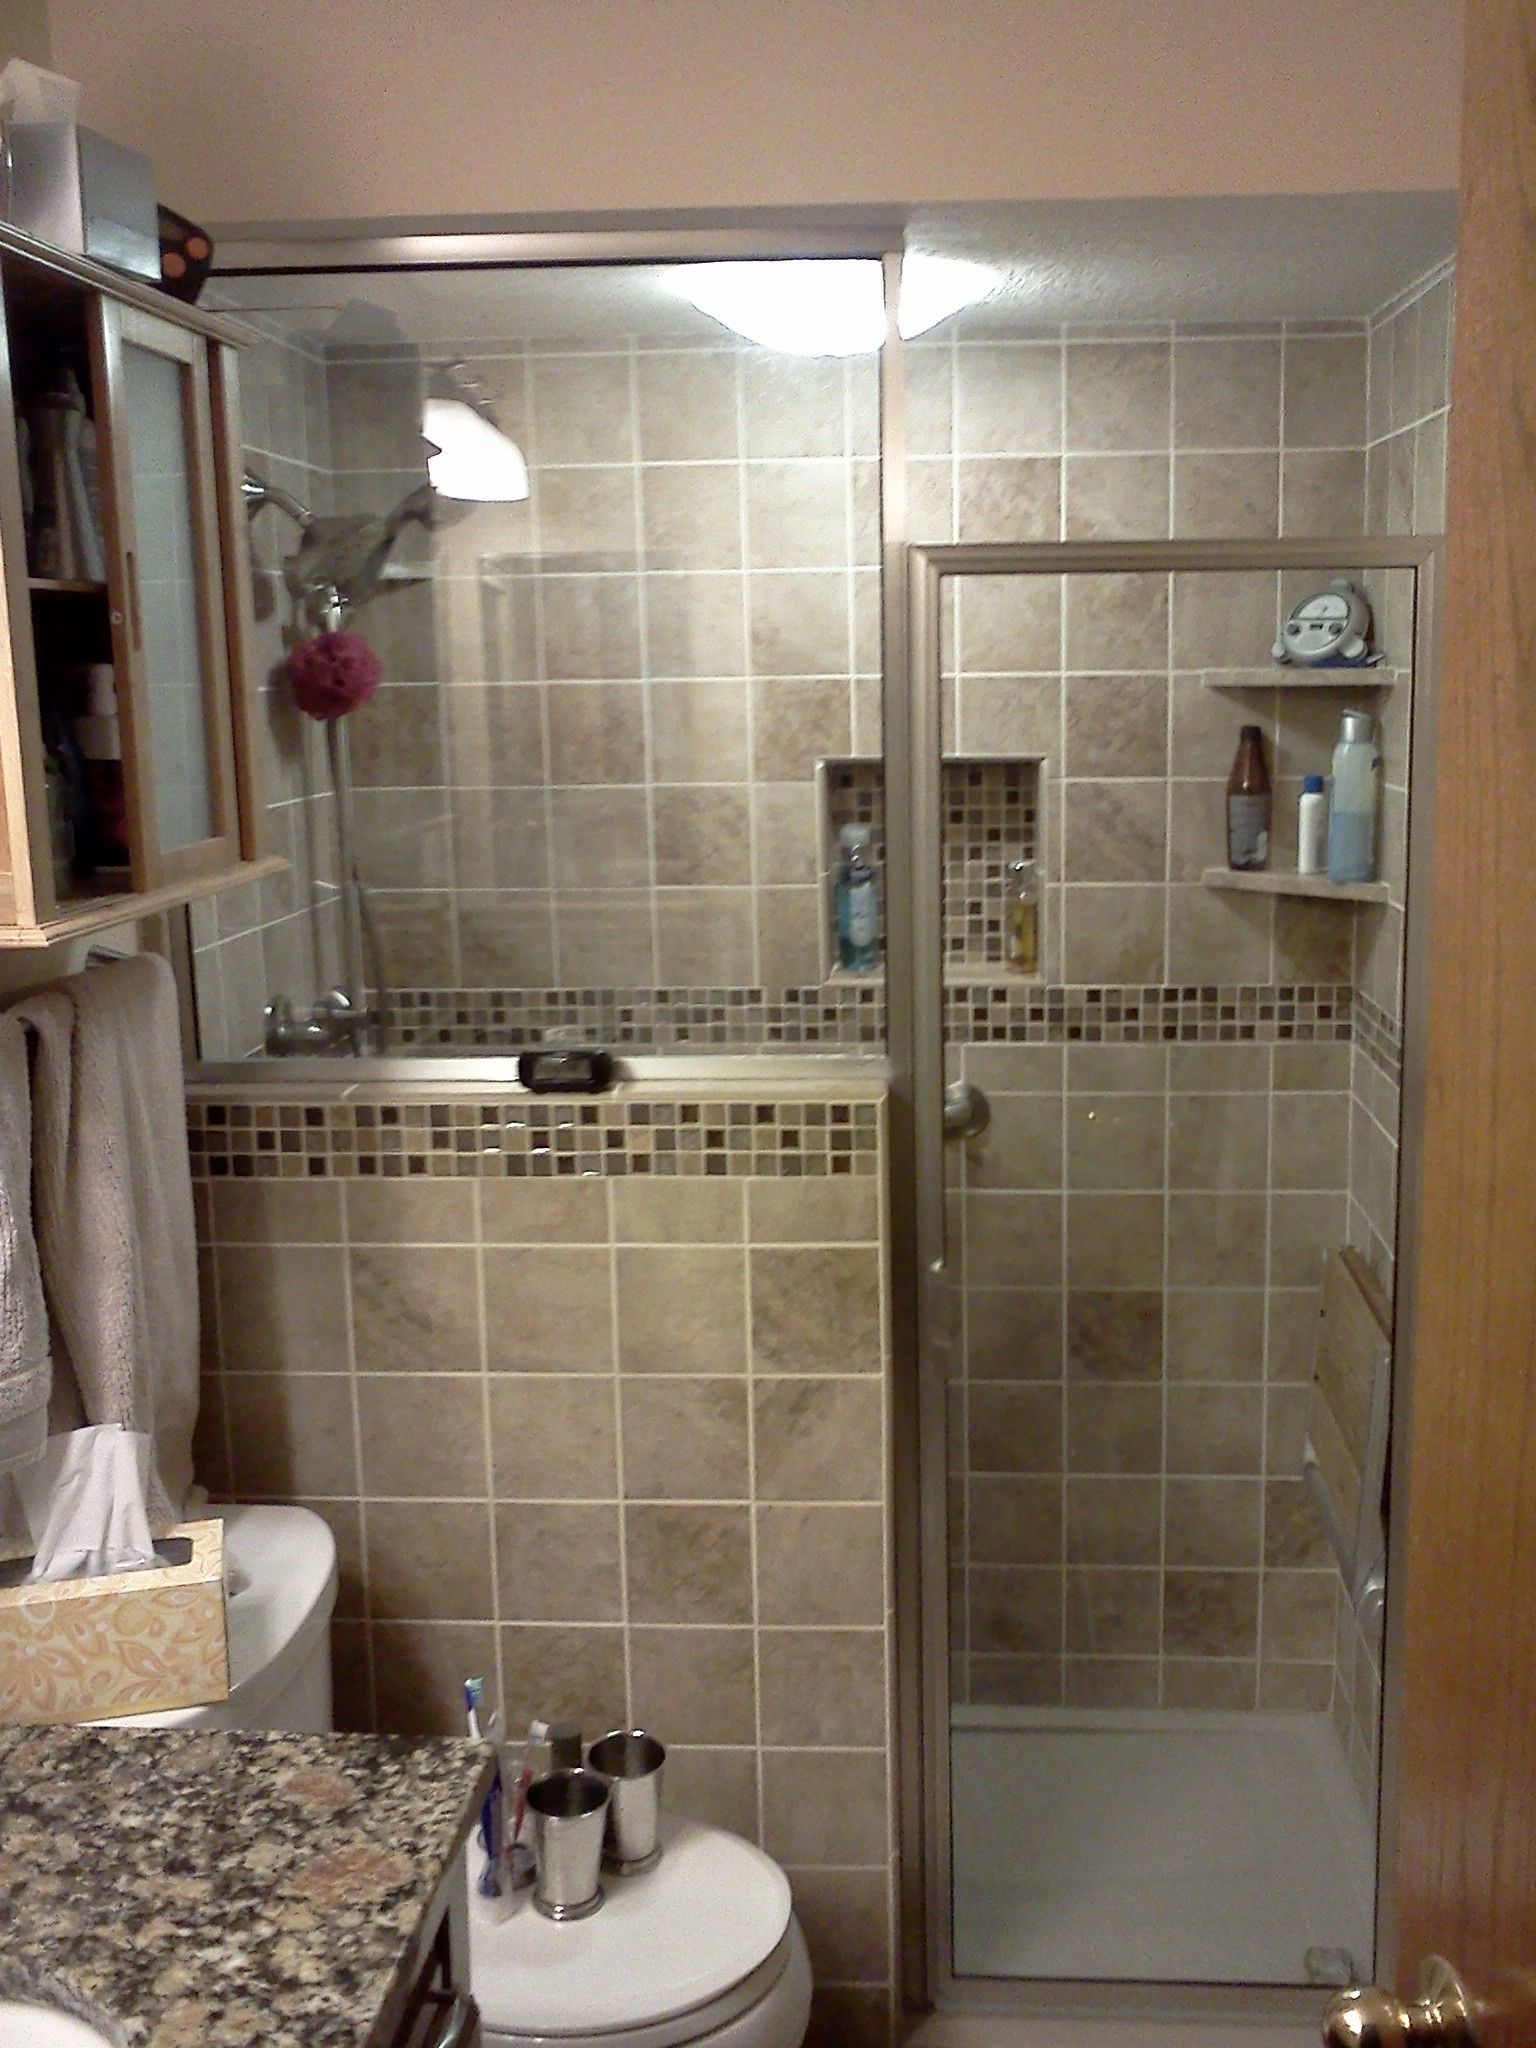 Bathroom Remodel Conversion From Tub To Shower With Privacy